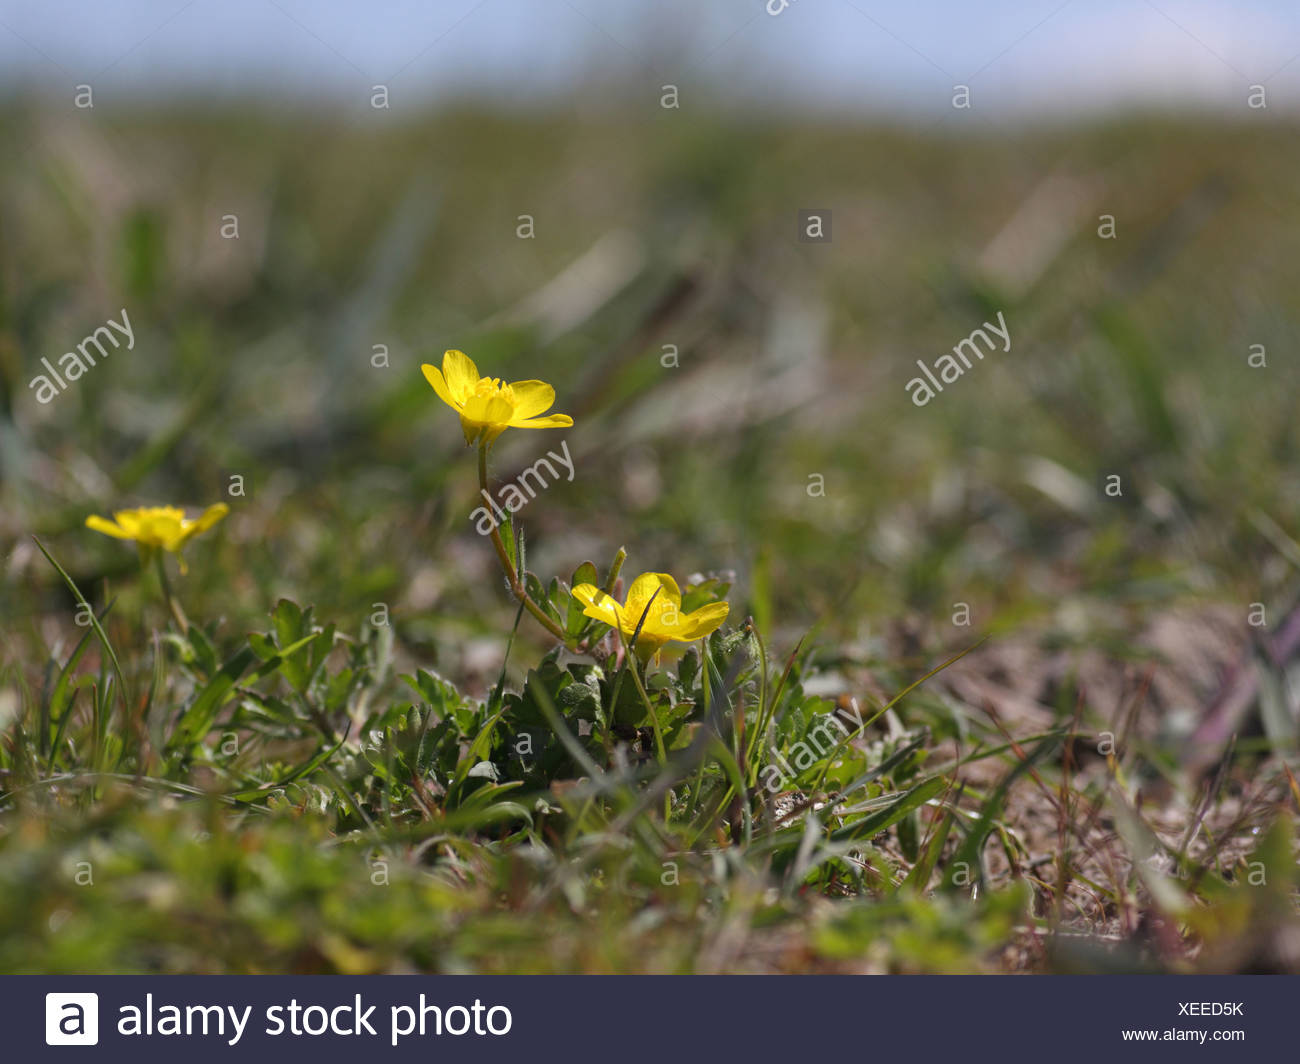 hairy buttercup - Stock Image